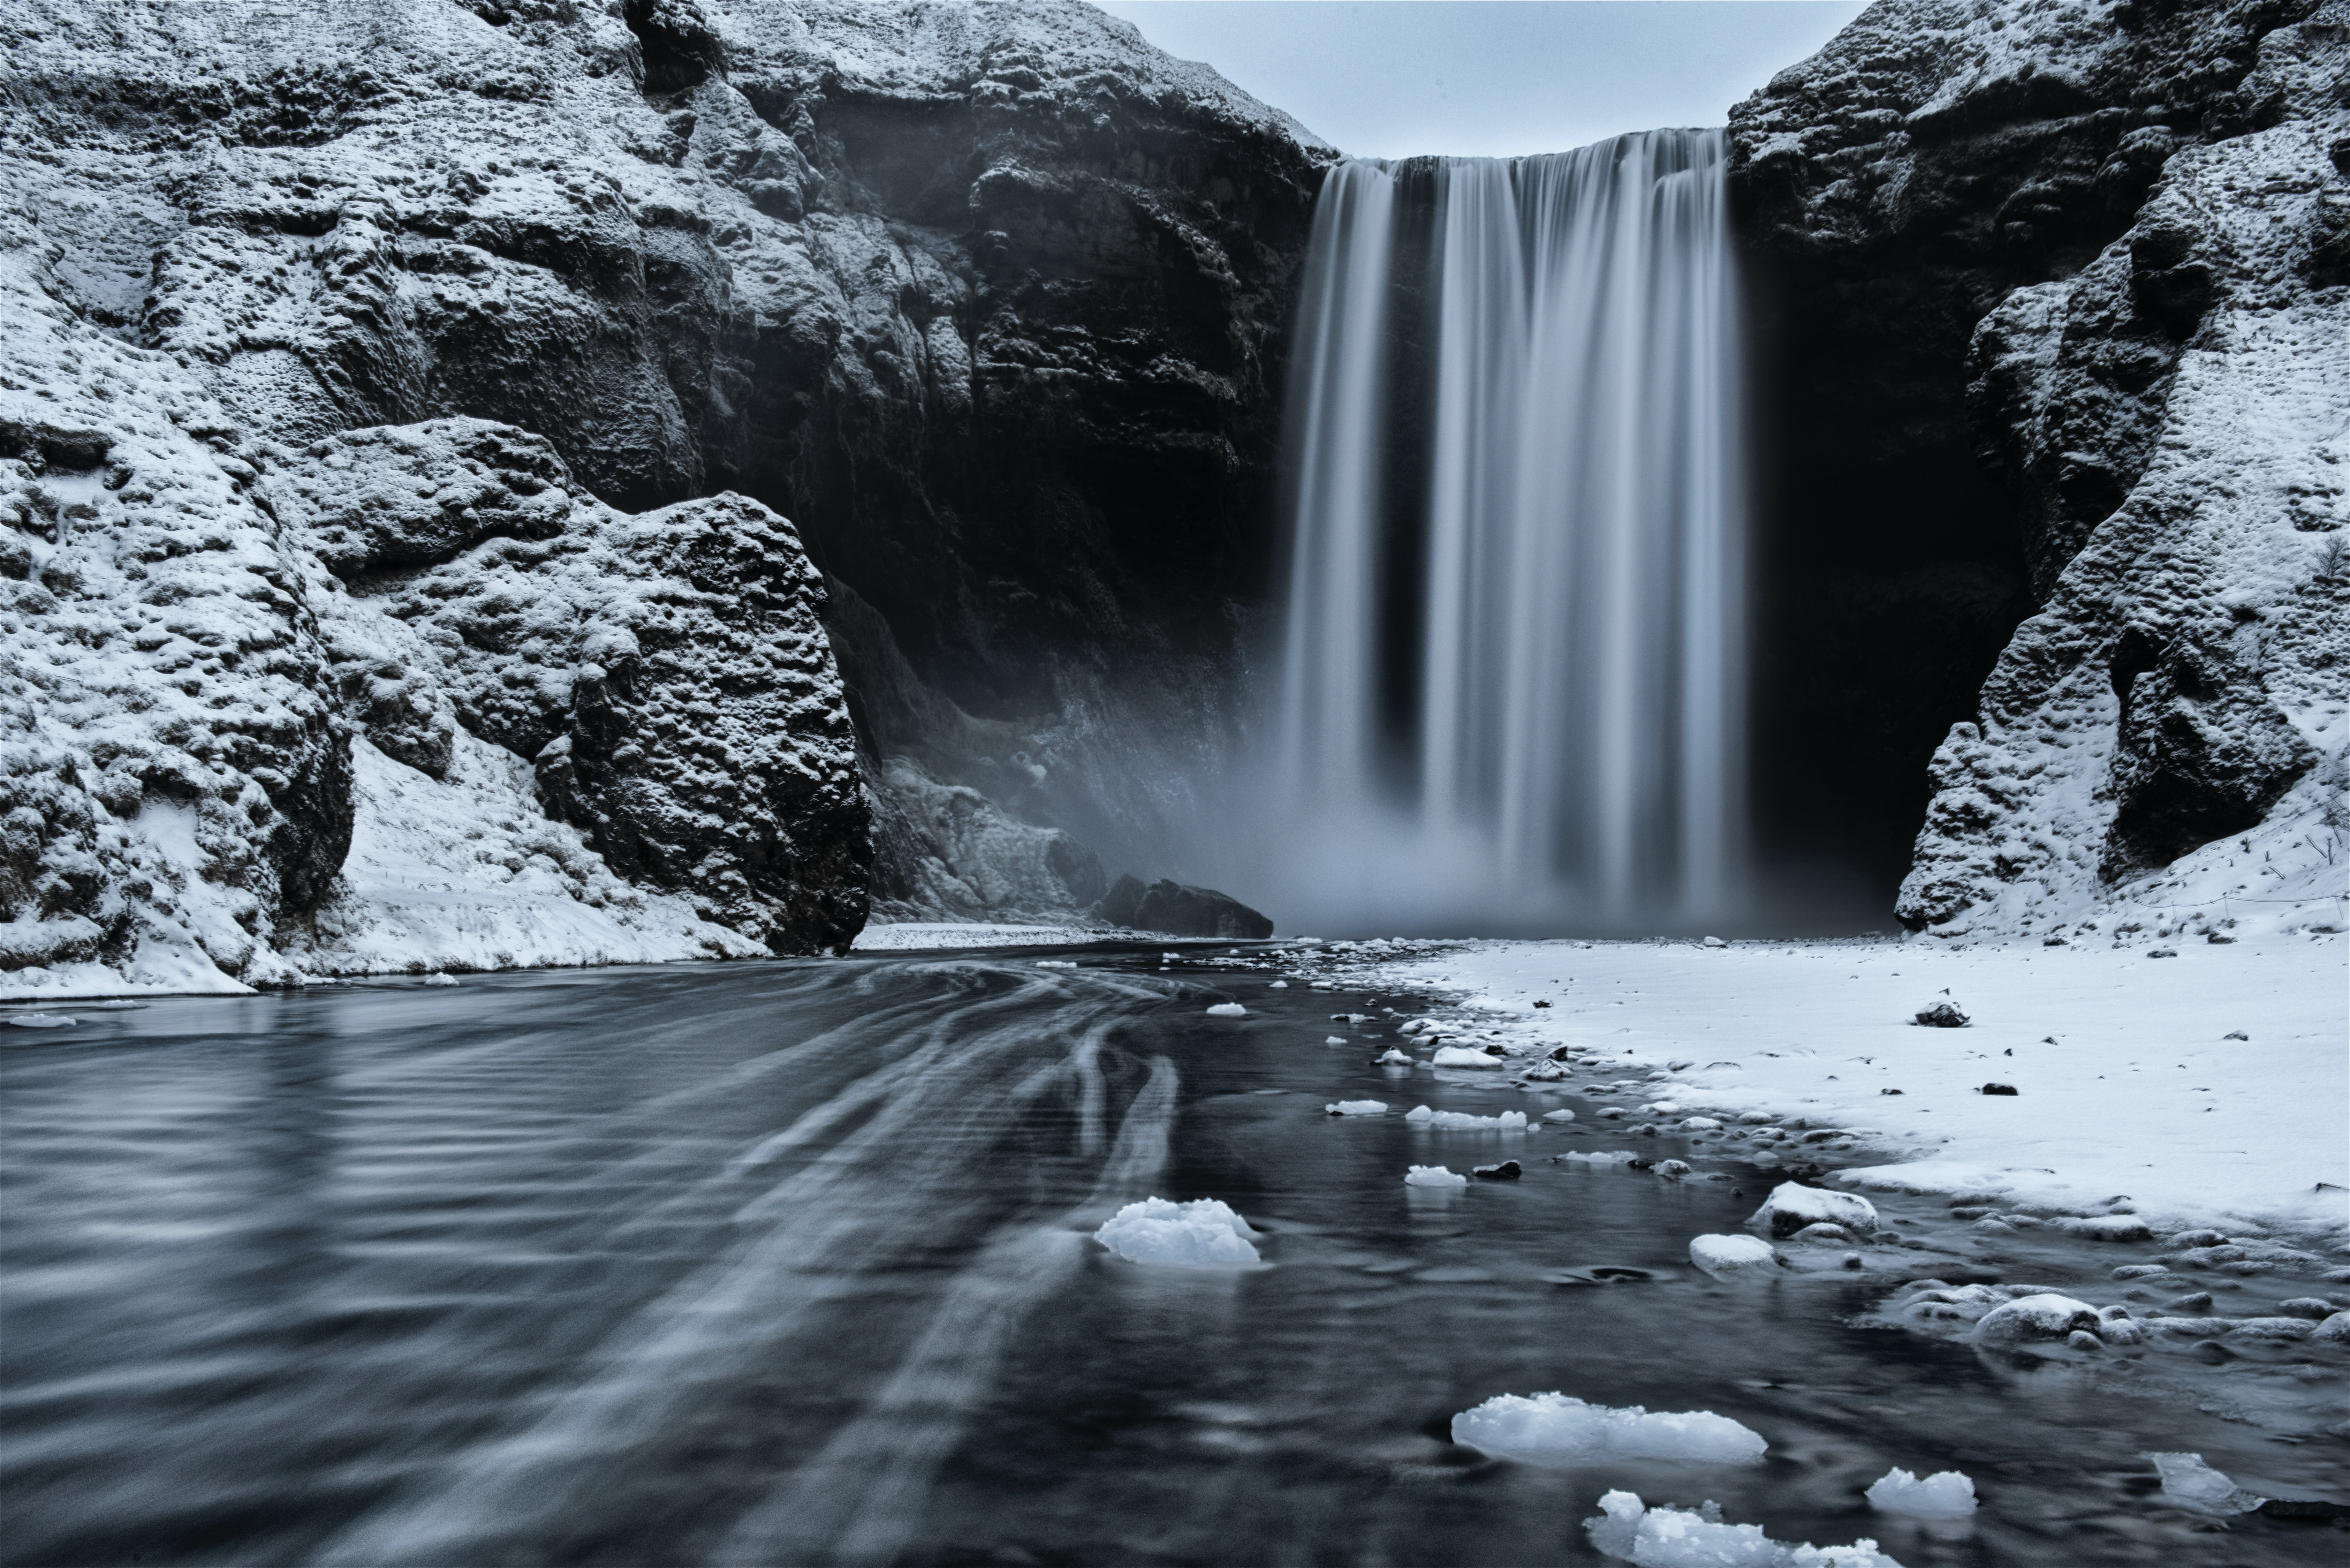 grayscale photo of waterfalls